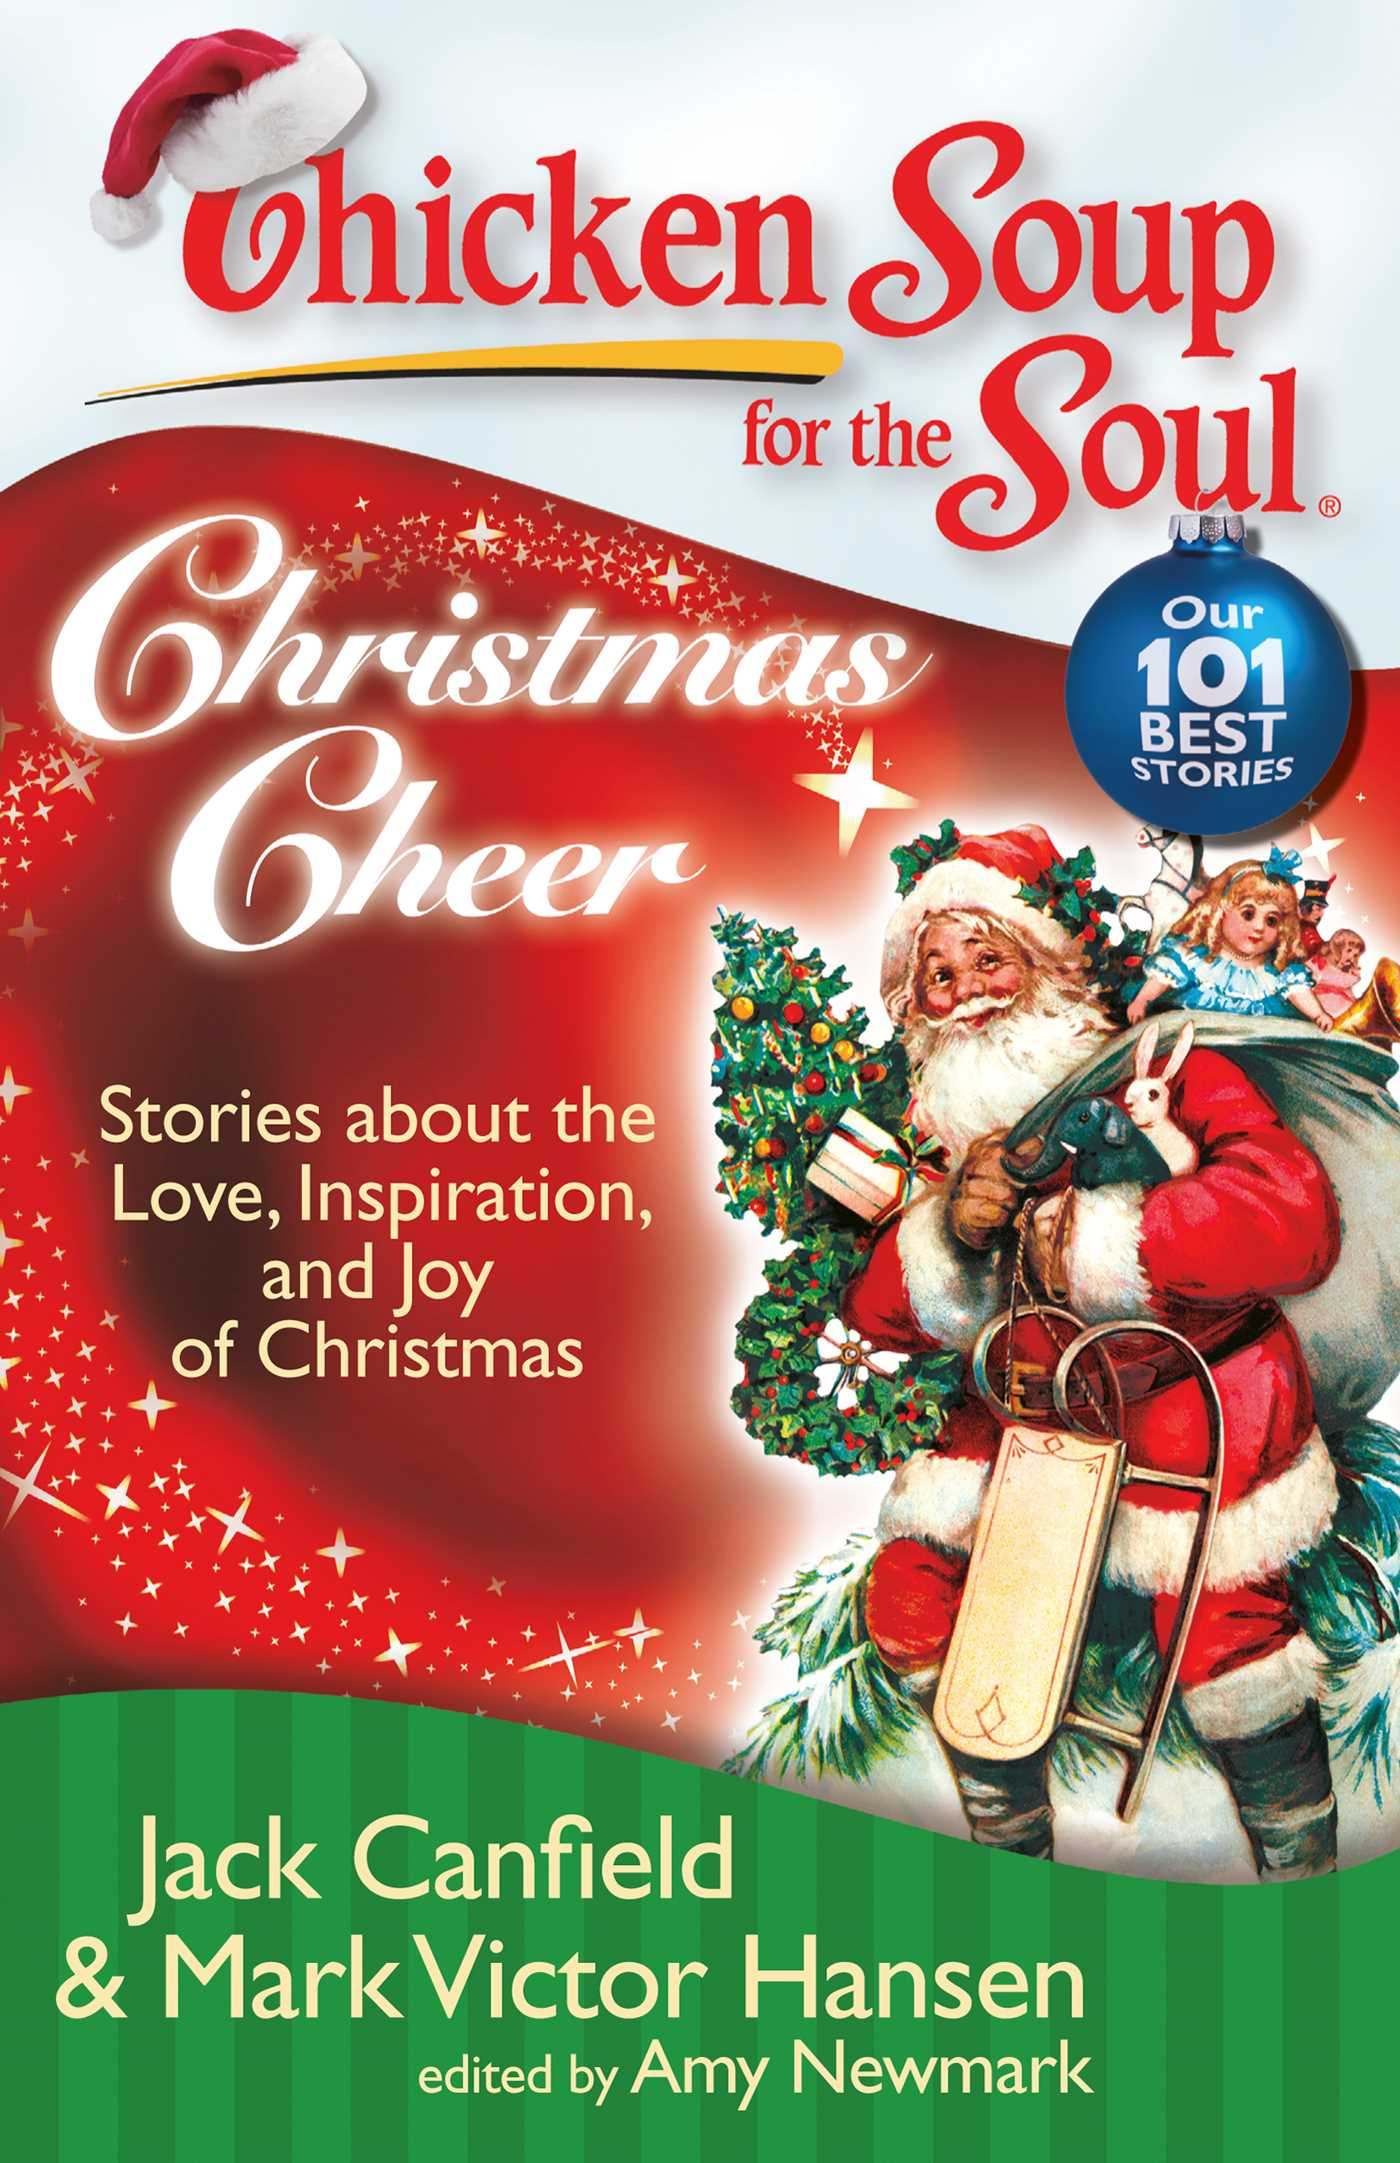 Chicken soup for the soul christmas cheer 9781611591378 hr